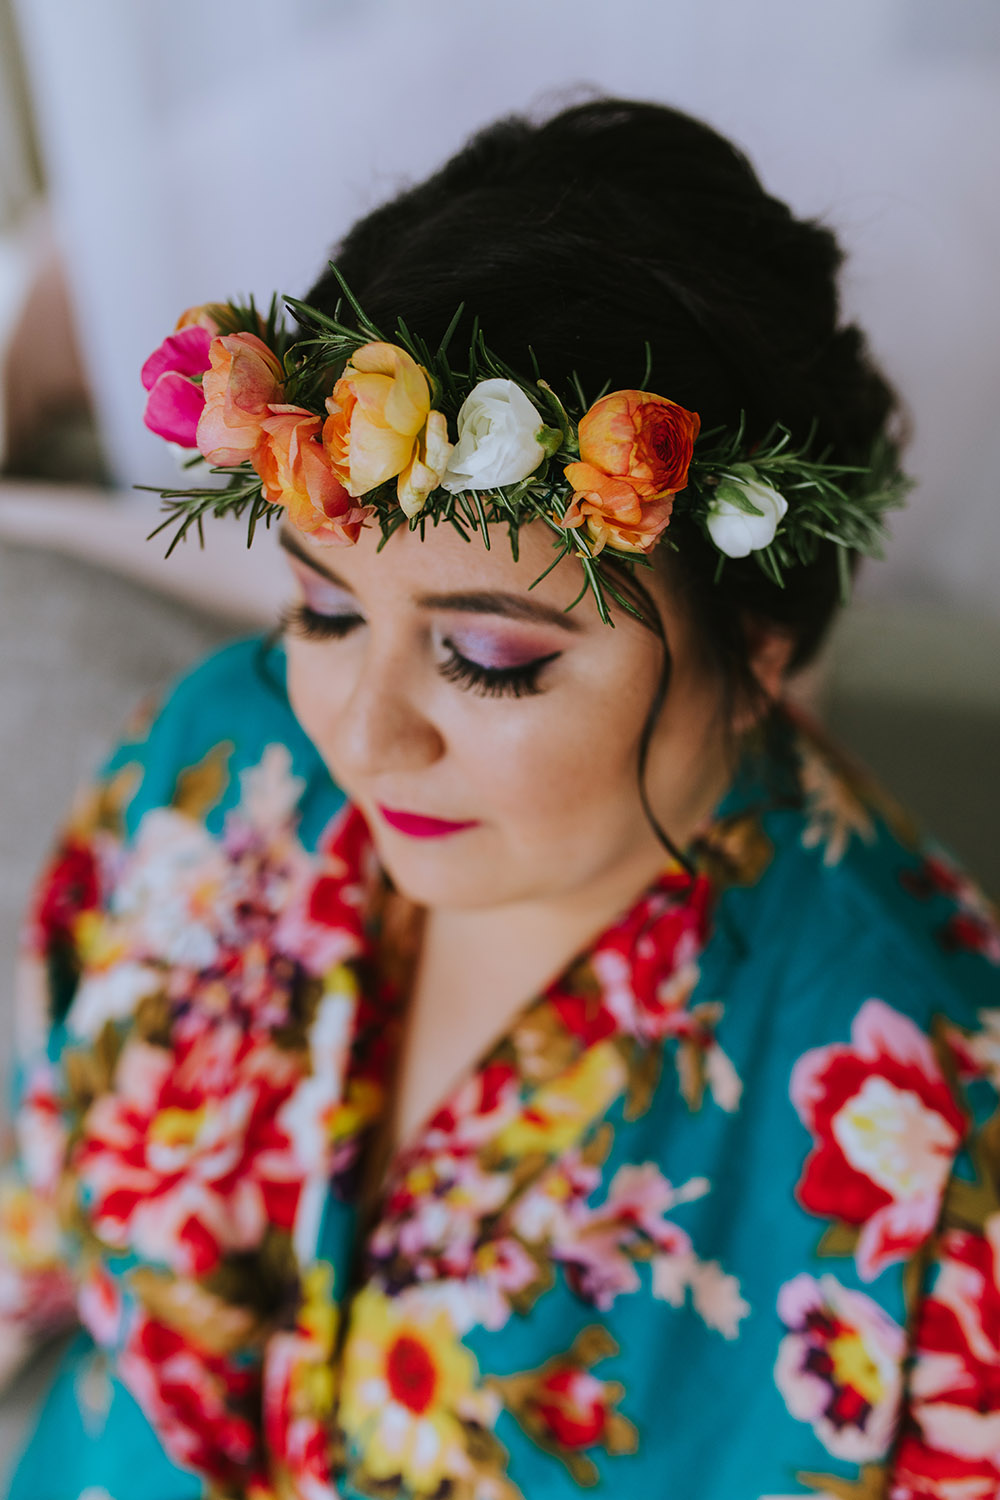 Pistil and Stamen created a floral wreath headpiece for Del including orange, yellow, pink and ivory blooms with sprigs of rosemary. Photo: Ashley Biltz